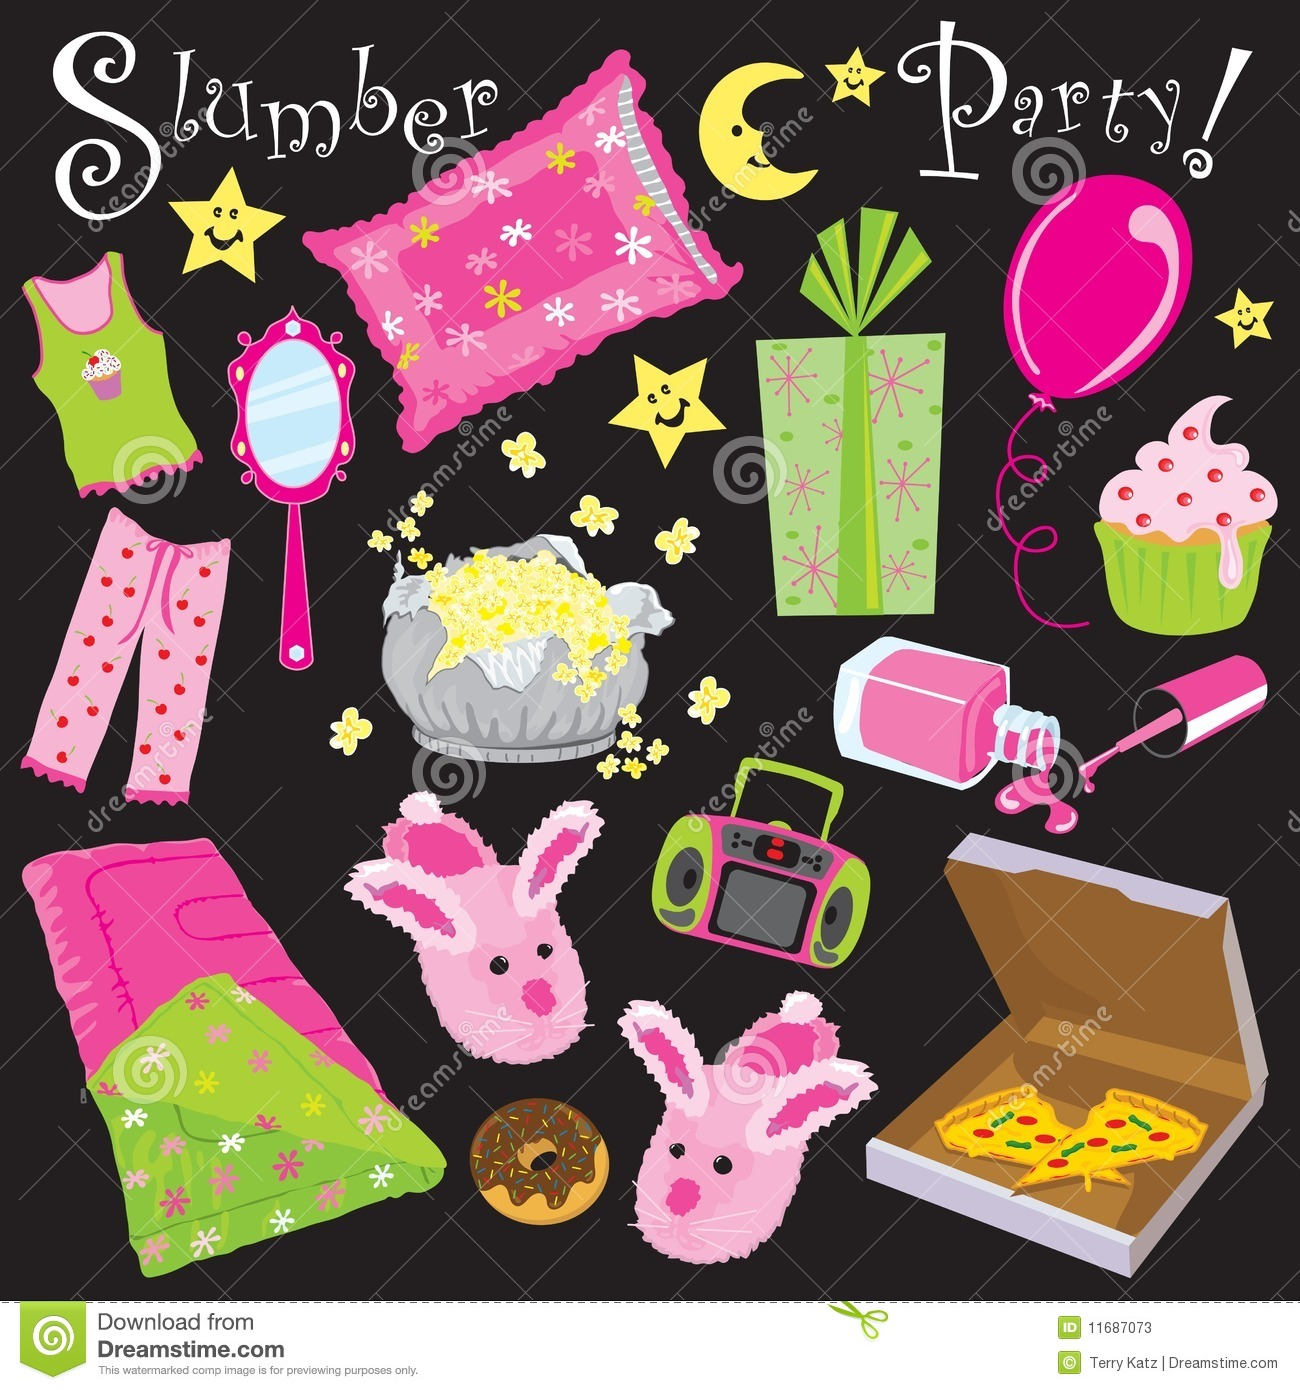 Slumber Party! Stock Photos - Image: 11687073